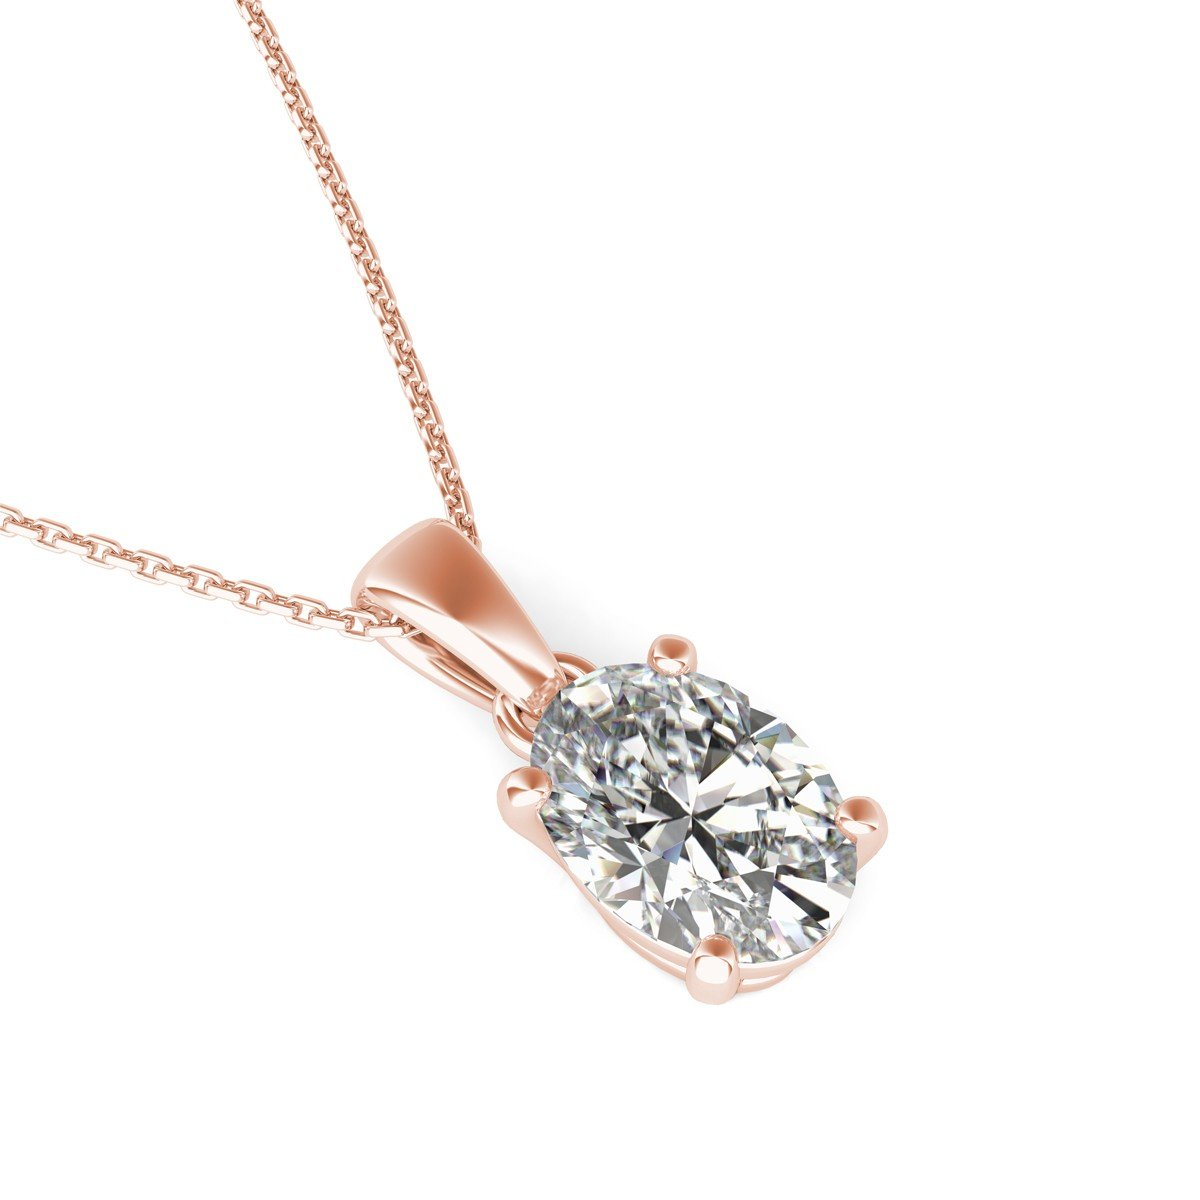 Jalash 10 x 12mm Oval Cut CZ Diamomd Womens Pendant in Rose Gold Plating Only Pendant